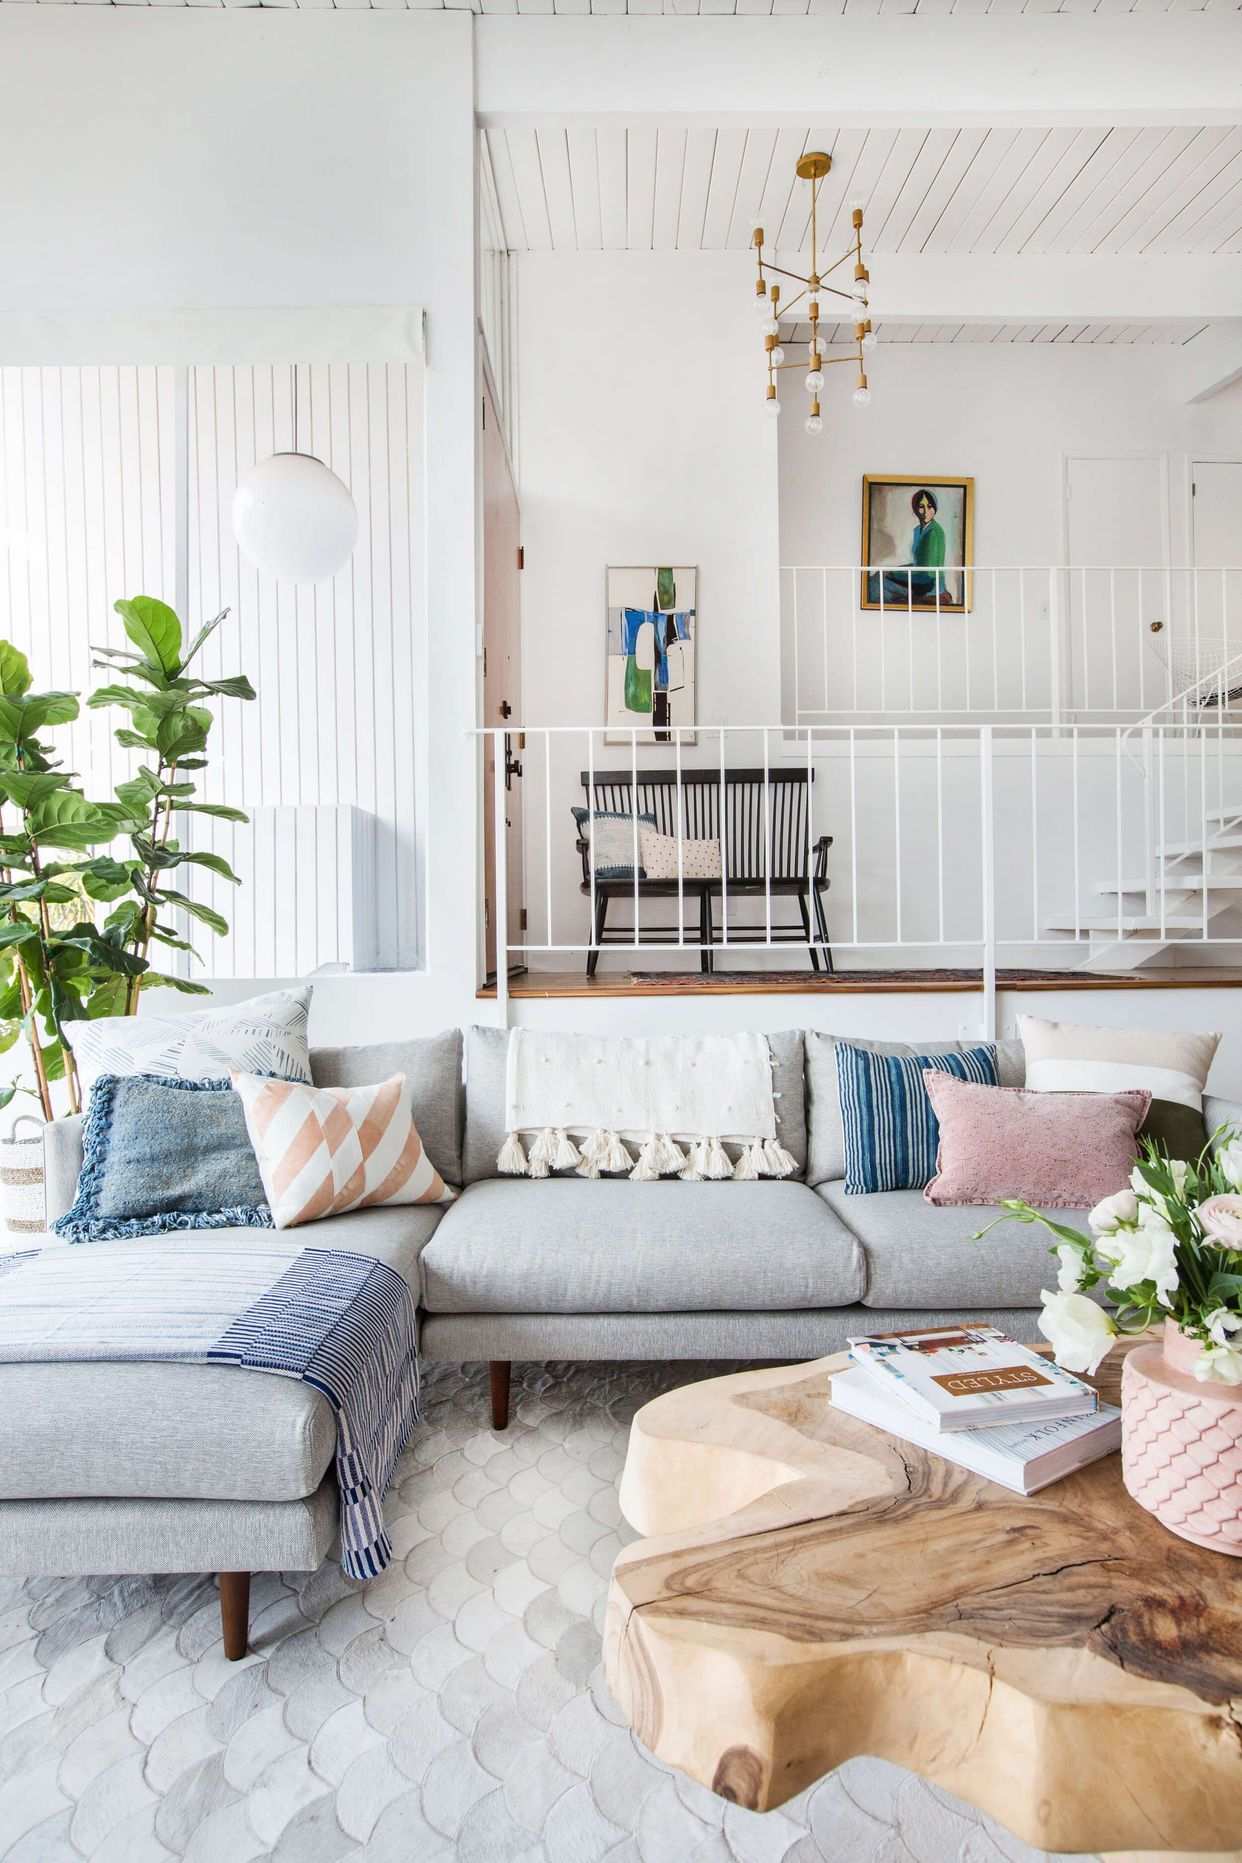 How To Add Style To A Neutral Living Room (Emily Henderson ...